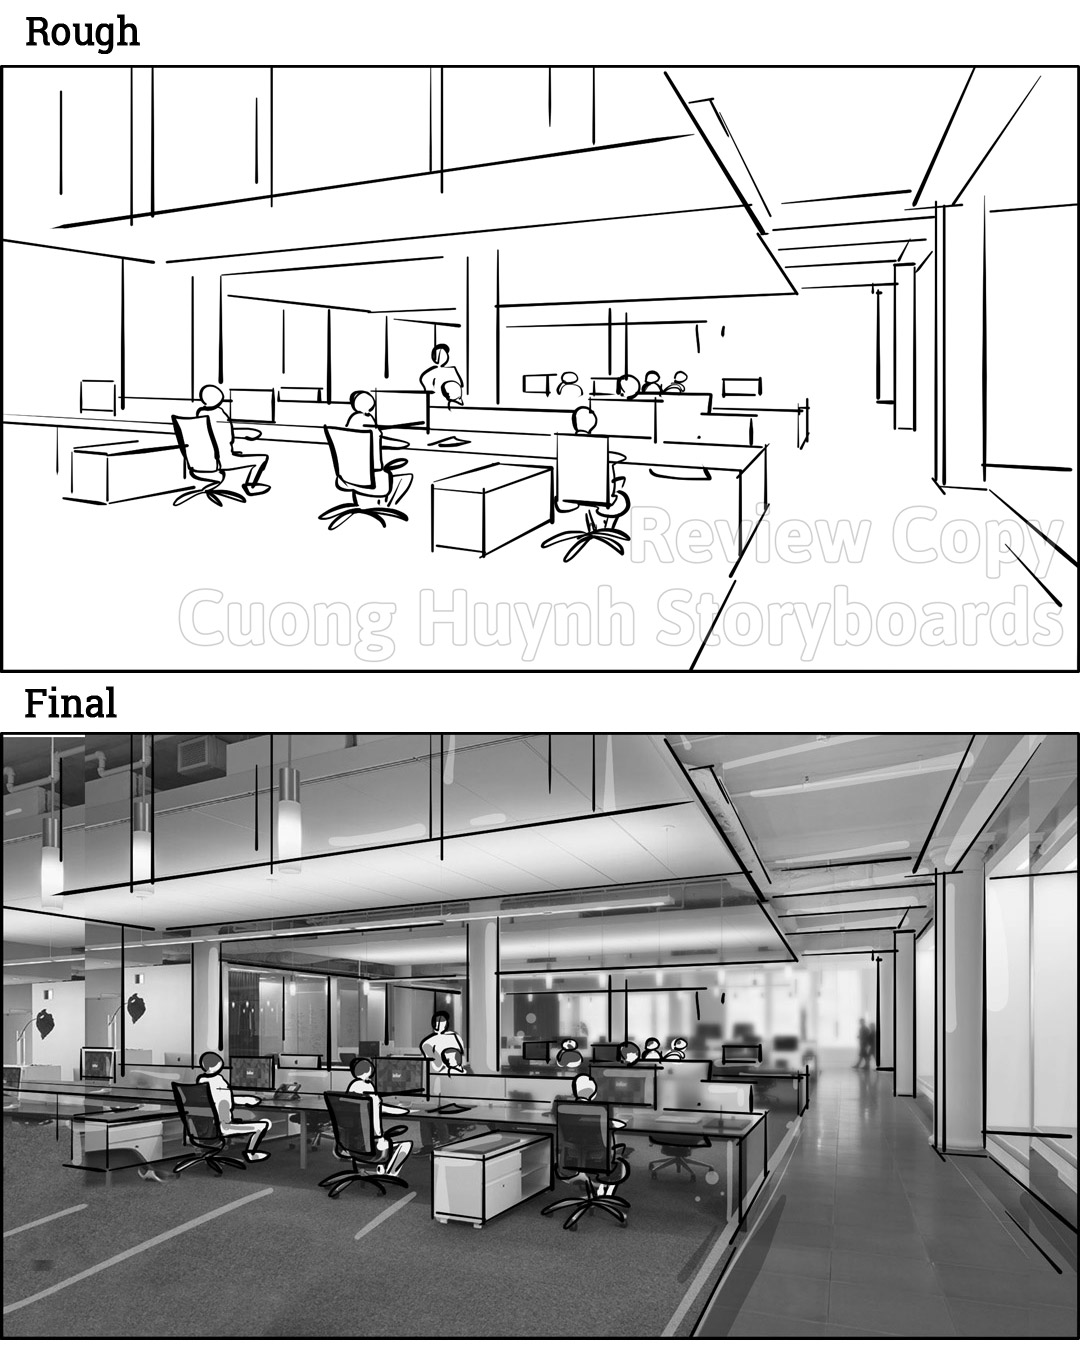 TBB Rough Versus Final Storyboards 25